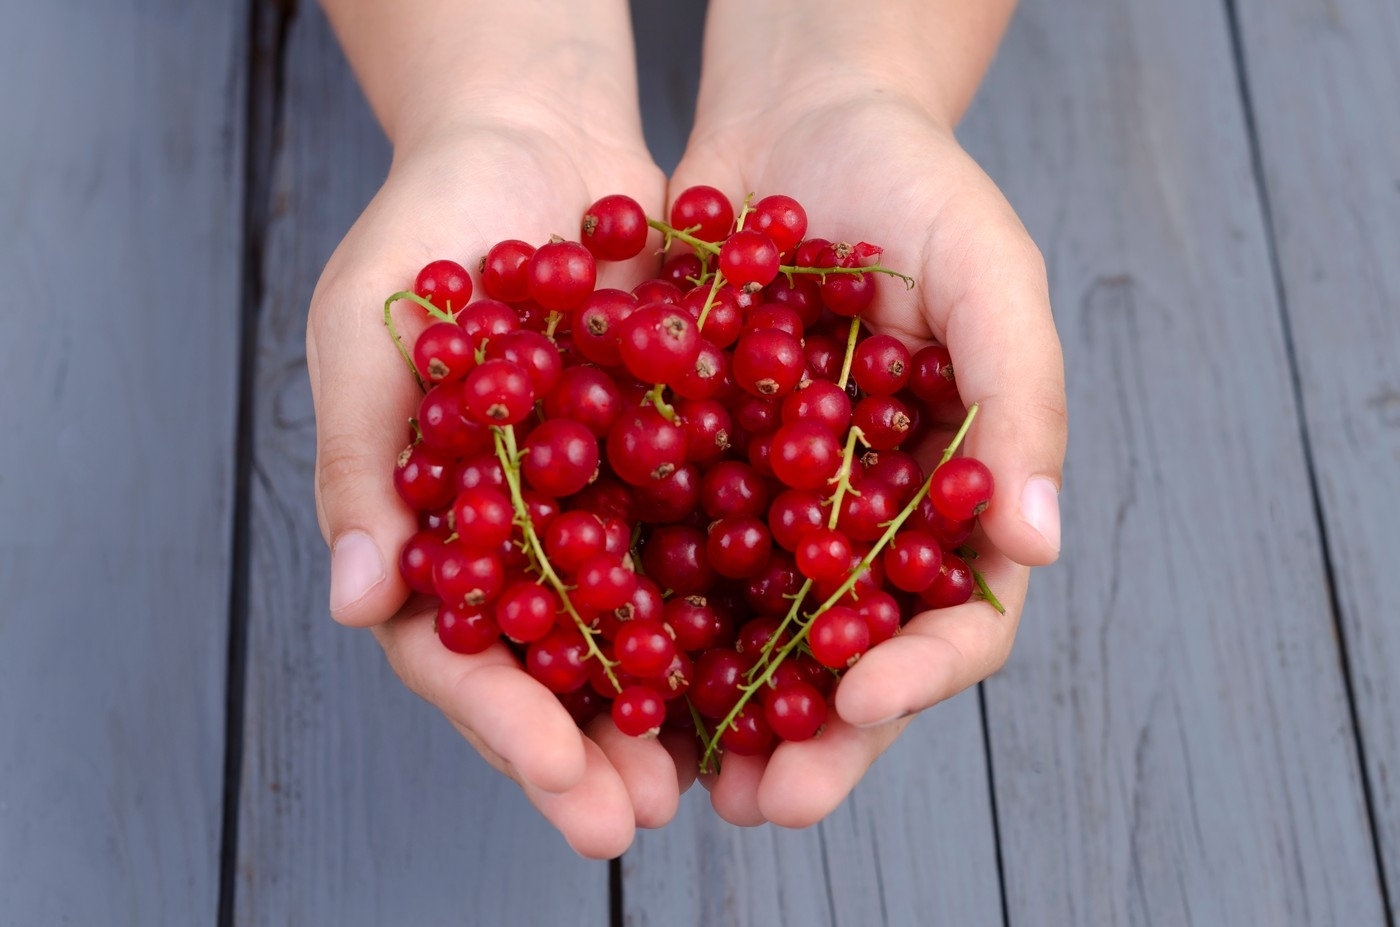 Image: 0174722909, License: Royalty free, Hands with redcurrants, Property Release: No or not aplicable, Model Release: No or not aplicable, Credit line: Profimedia.com, Westend